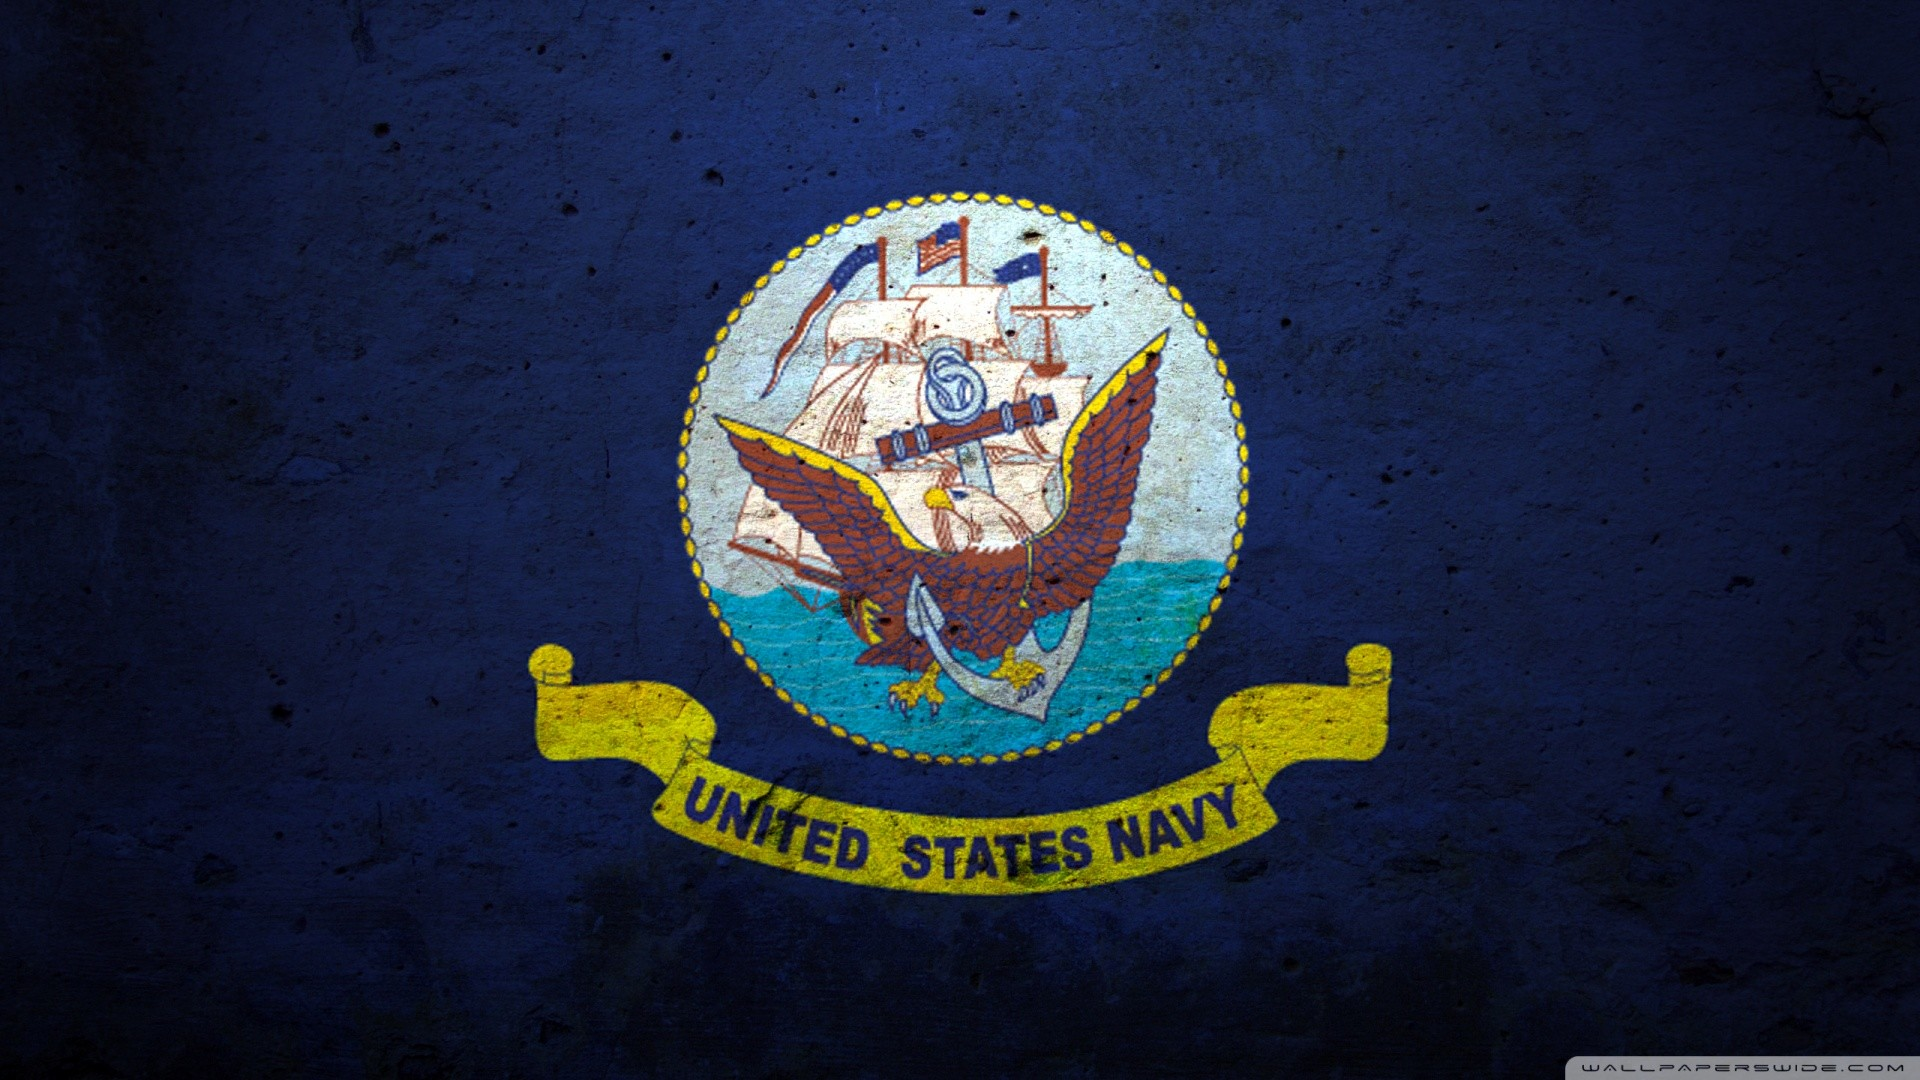 1920x1080 United States Navy Wallpaper  Flag, Of, The, United,